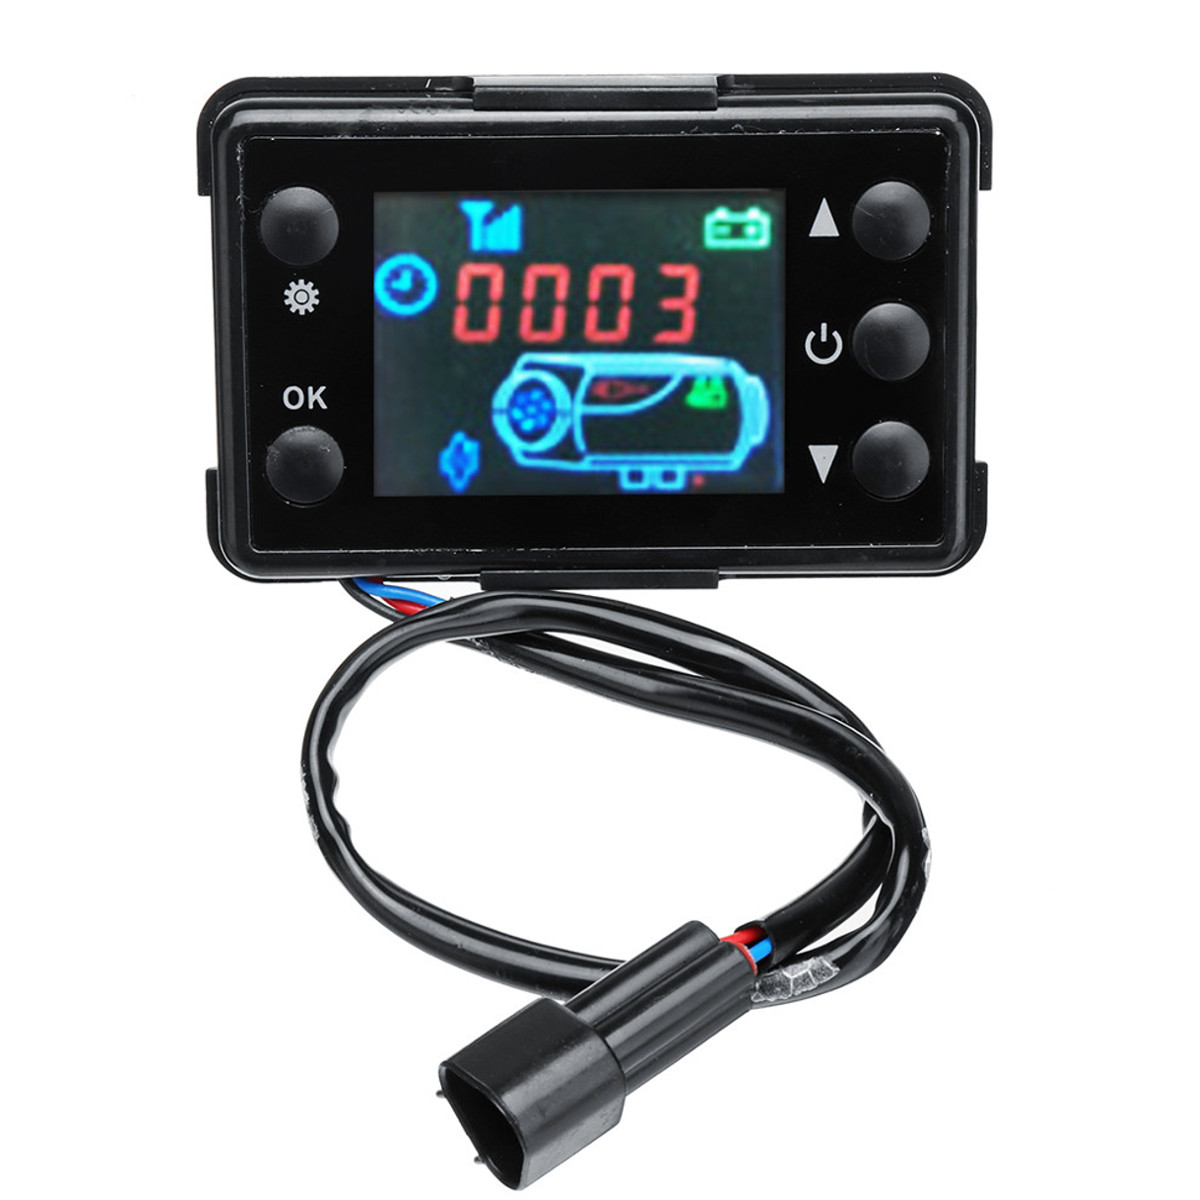 12v/24v 3/5kw Lcd Monitor Parking Heater Switch Car Heating Device Controller Universal For Car Track Air Heater Skilful Manufacture Automobiles & Motorcycles